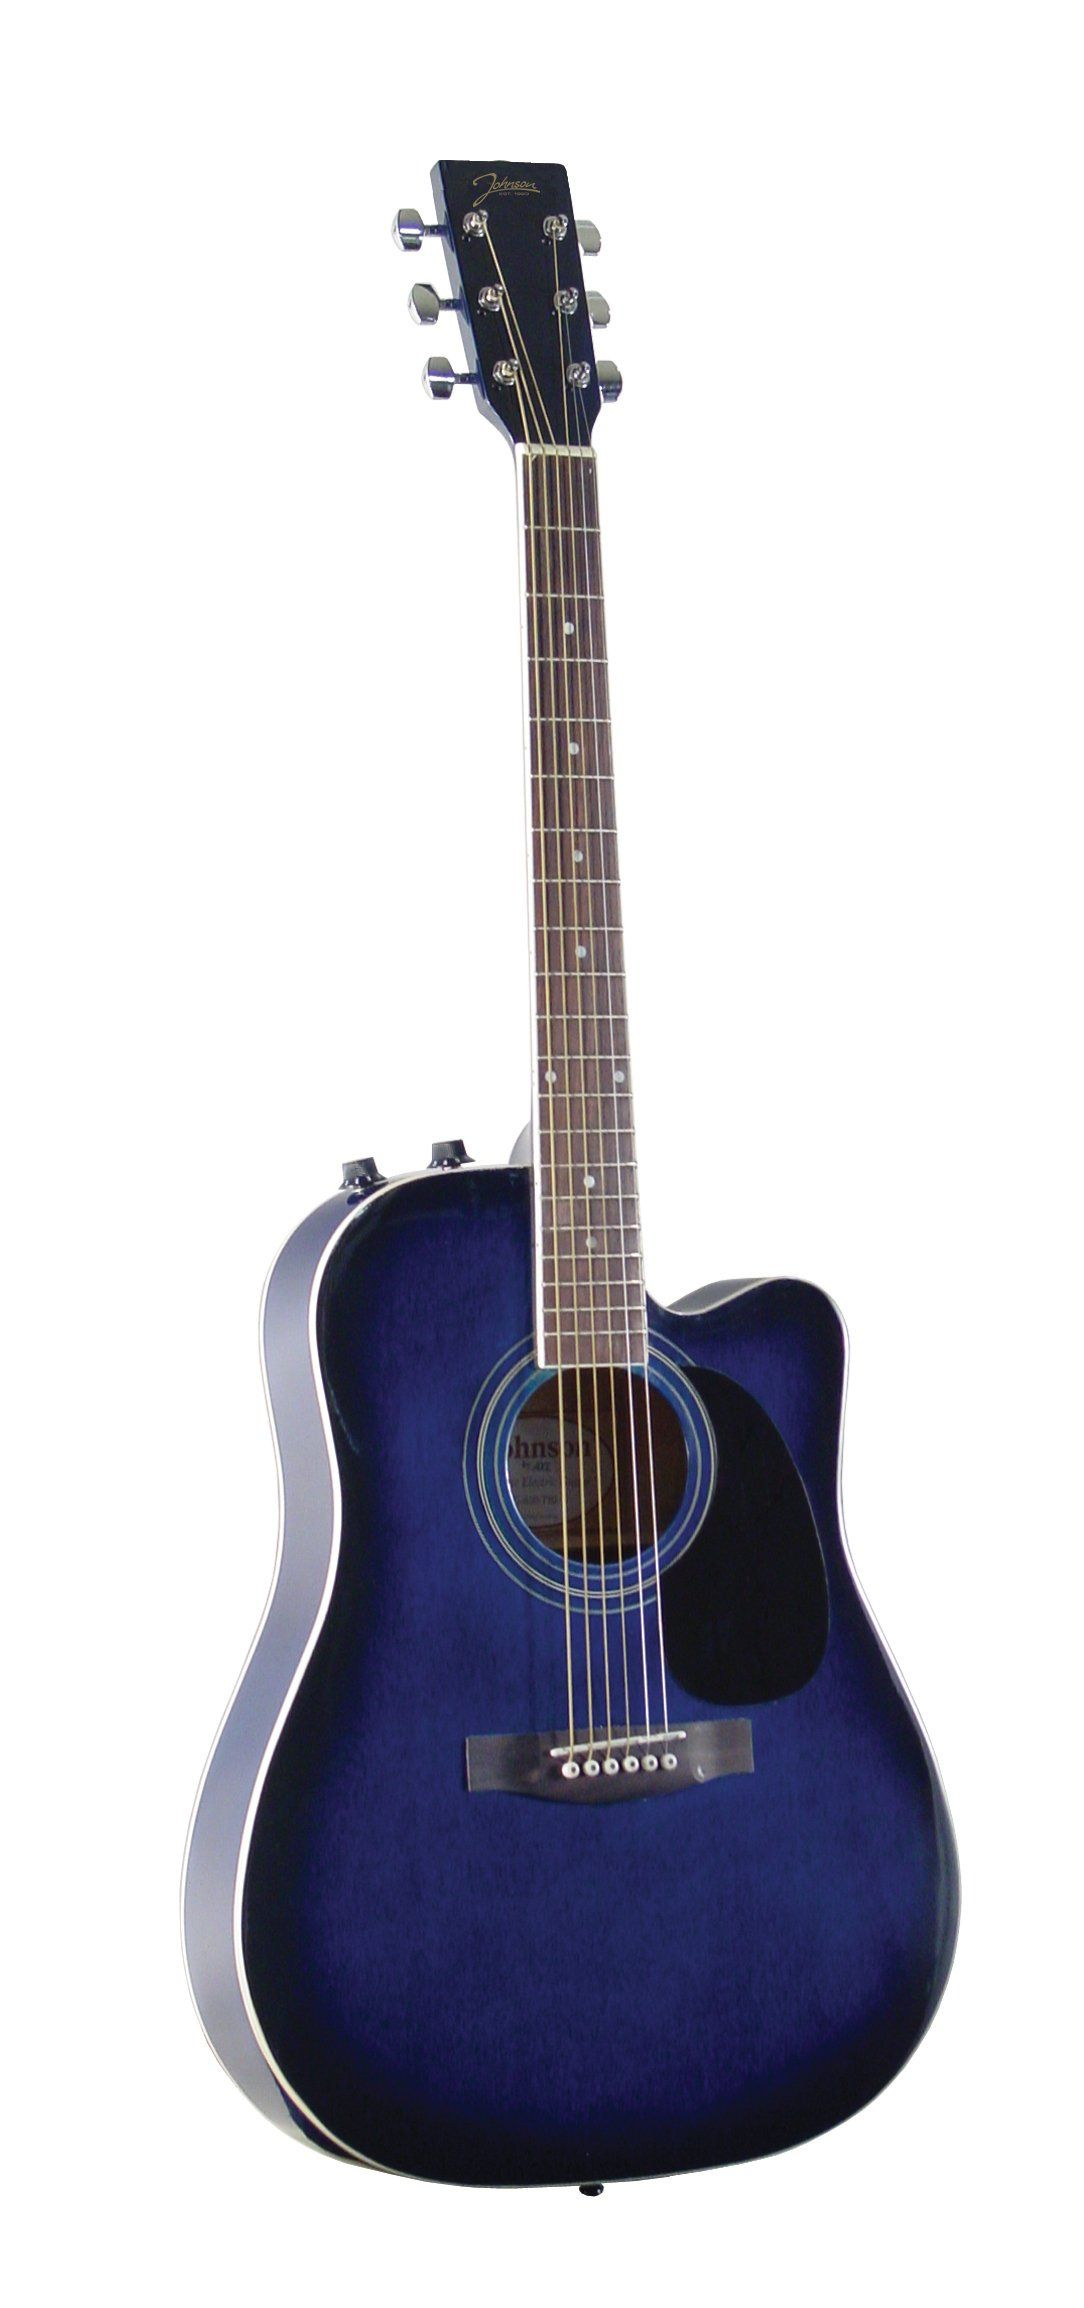 Johnson Jg 650 Tbl Thinbody Acoustic Guitar With Pickup Blueburst Spruce Top Nato Back Sides And Neck Rosewood Fretboard And Bridge Die C Acoustic Guitar Guitar Best Acoustic Guitar